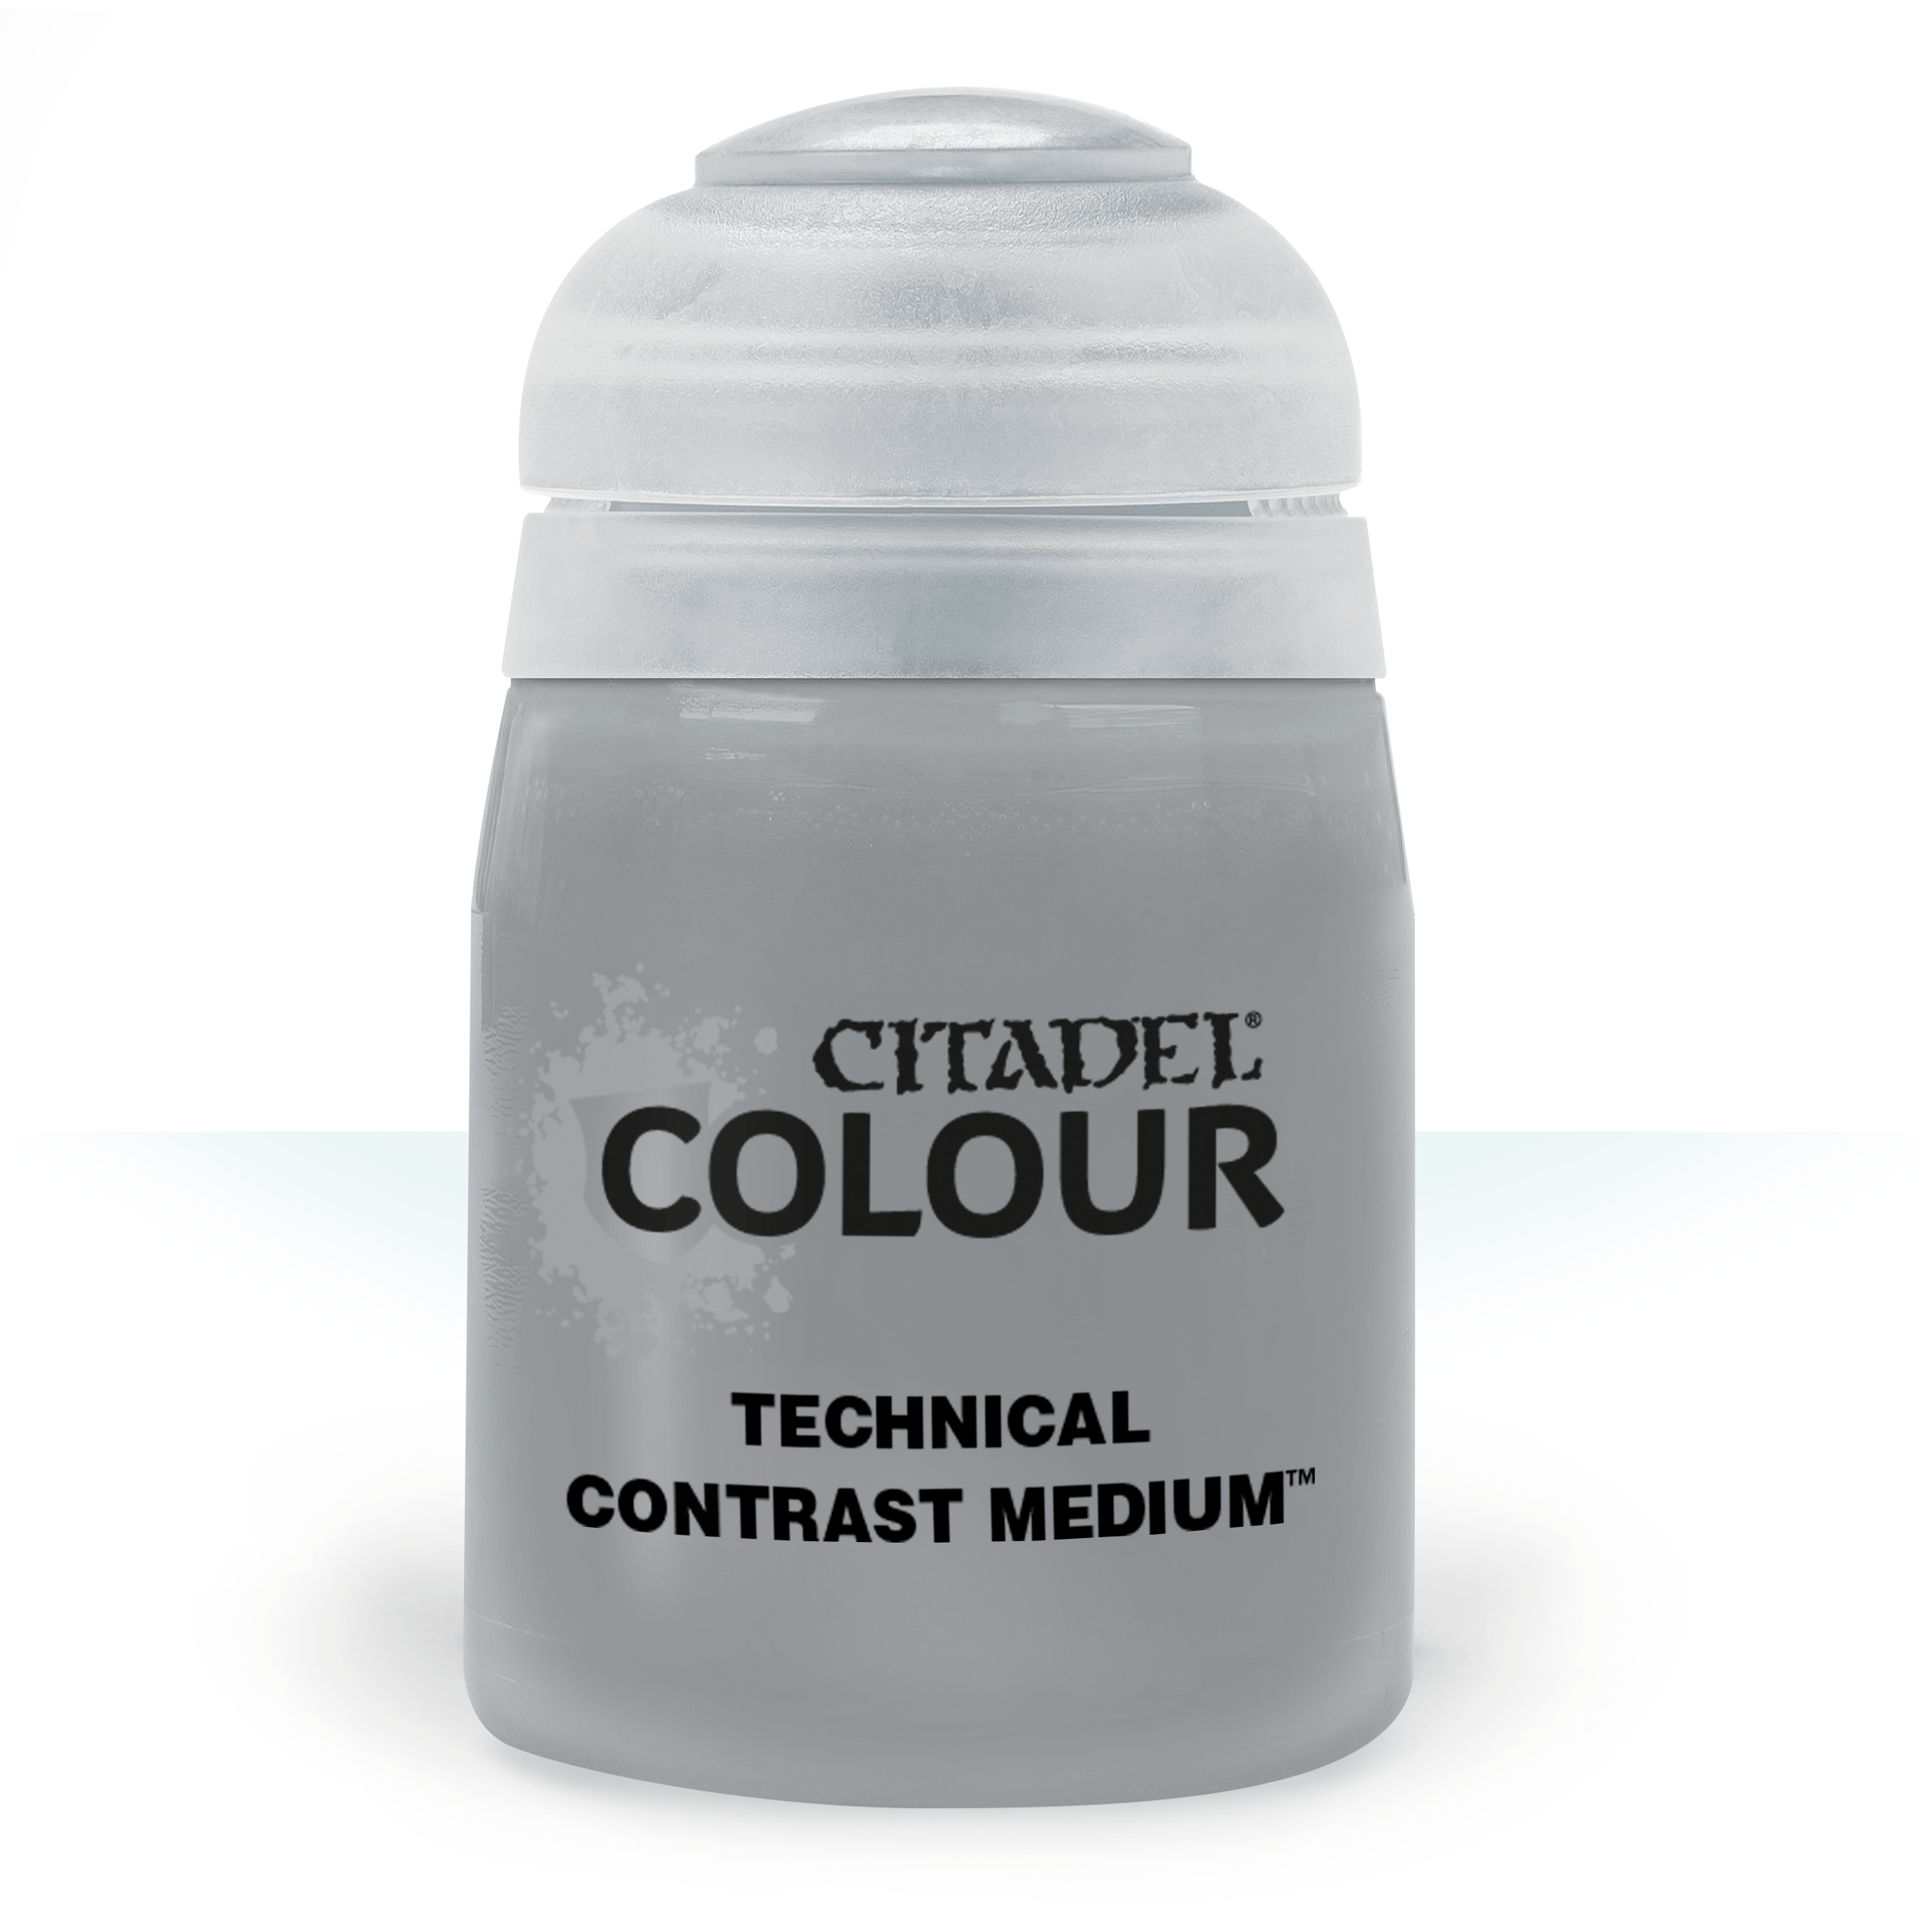 Contrast Medium, Citadel Technical 24ml